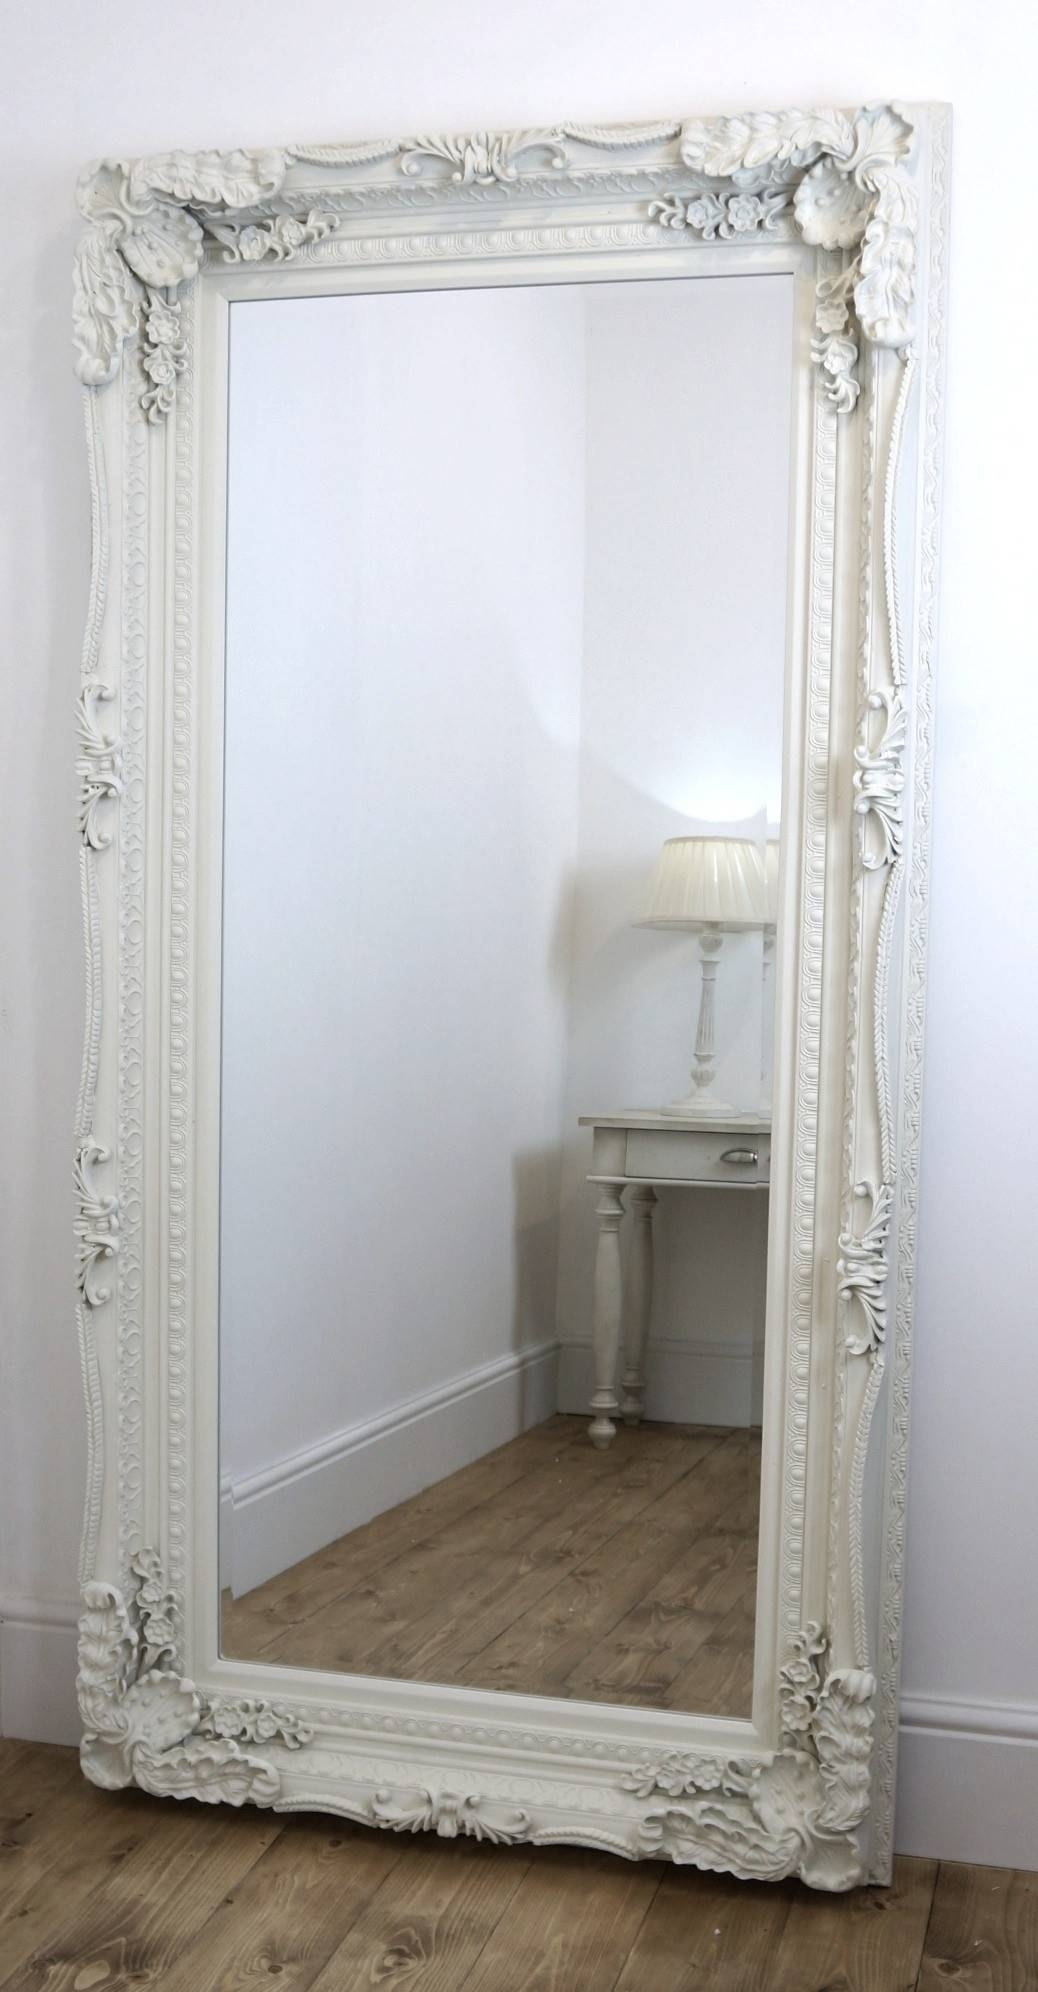 Furniture: Luxury Leaner Mirror For Home Accessories Ideas — Mtyp inside Big Ornate Mirrors (Image 8 of 15)